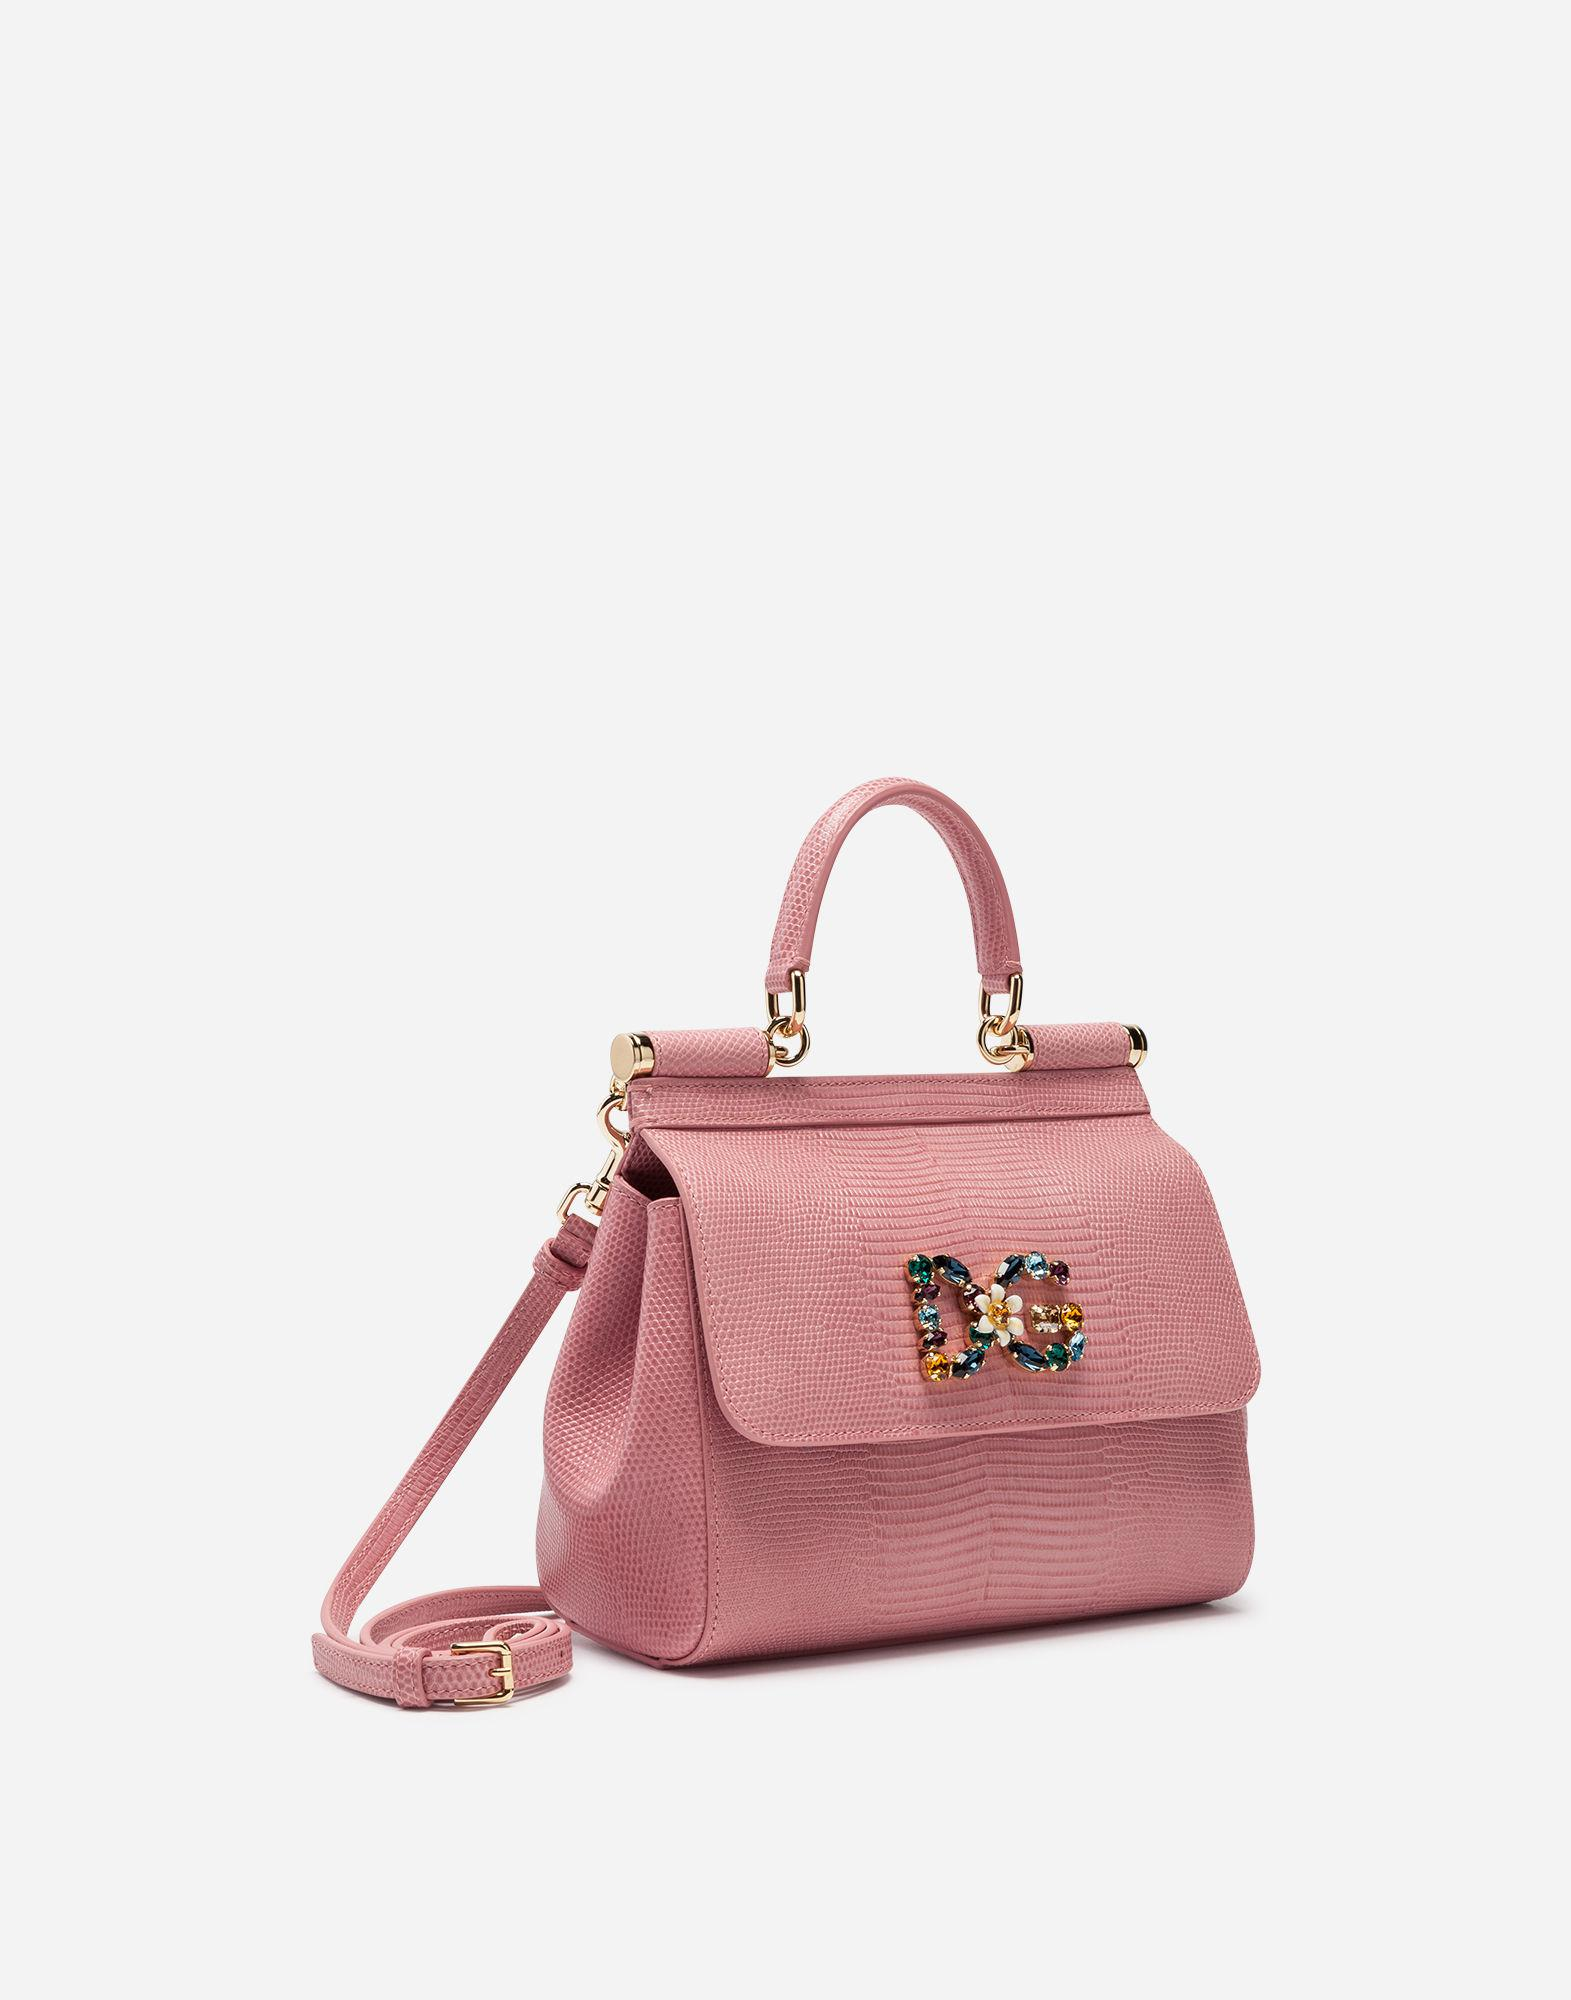 Lyst - Dolce   Gabbana Small Sicily Handbag In Iguana Print Calfskin With Dg  Logo Crystals in Pink 4ce8e006bc